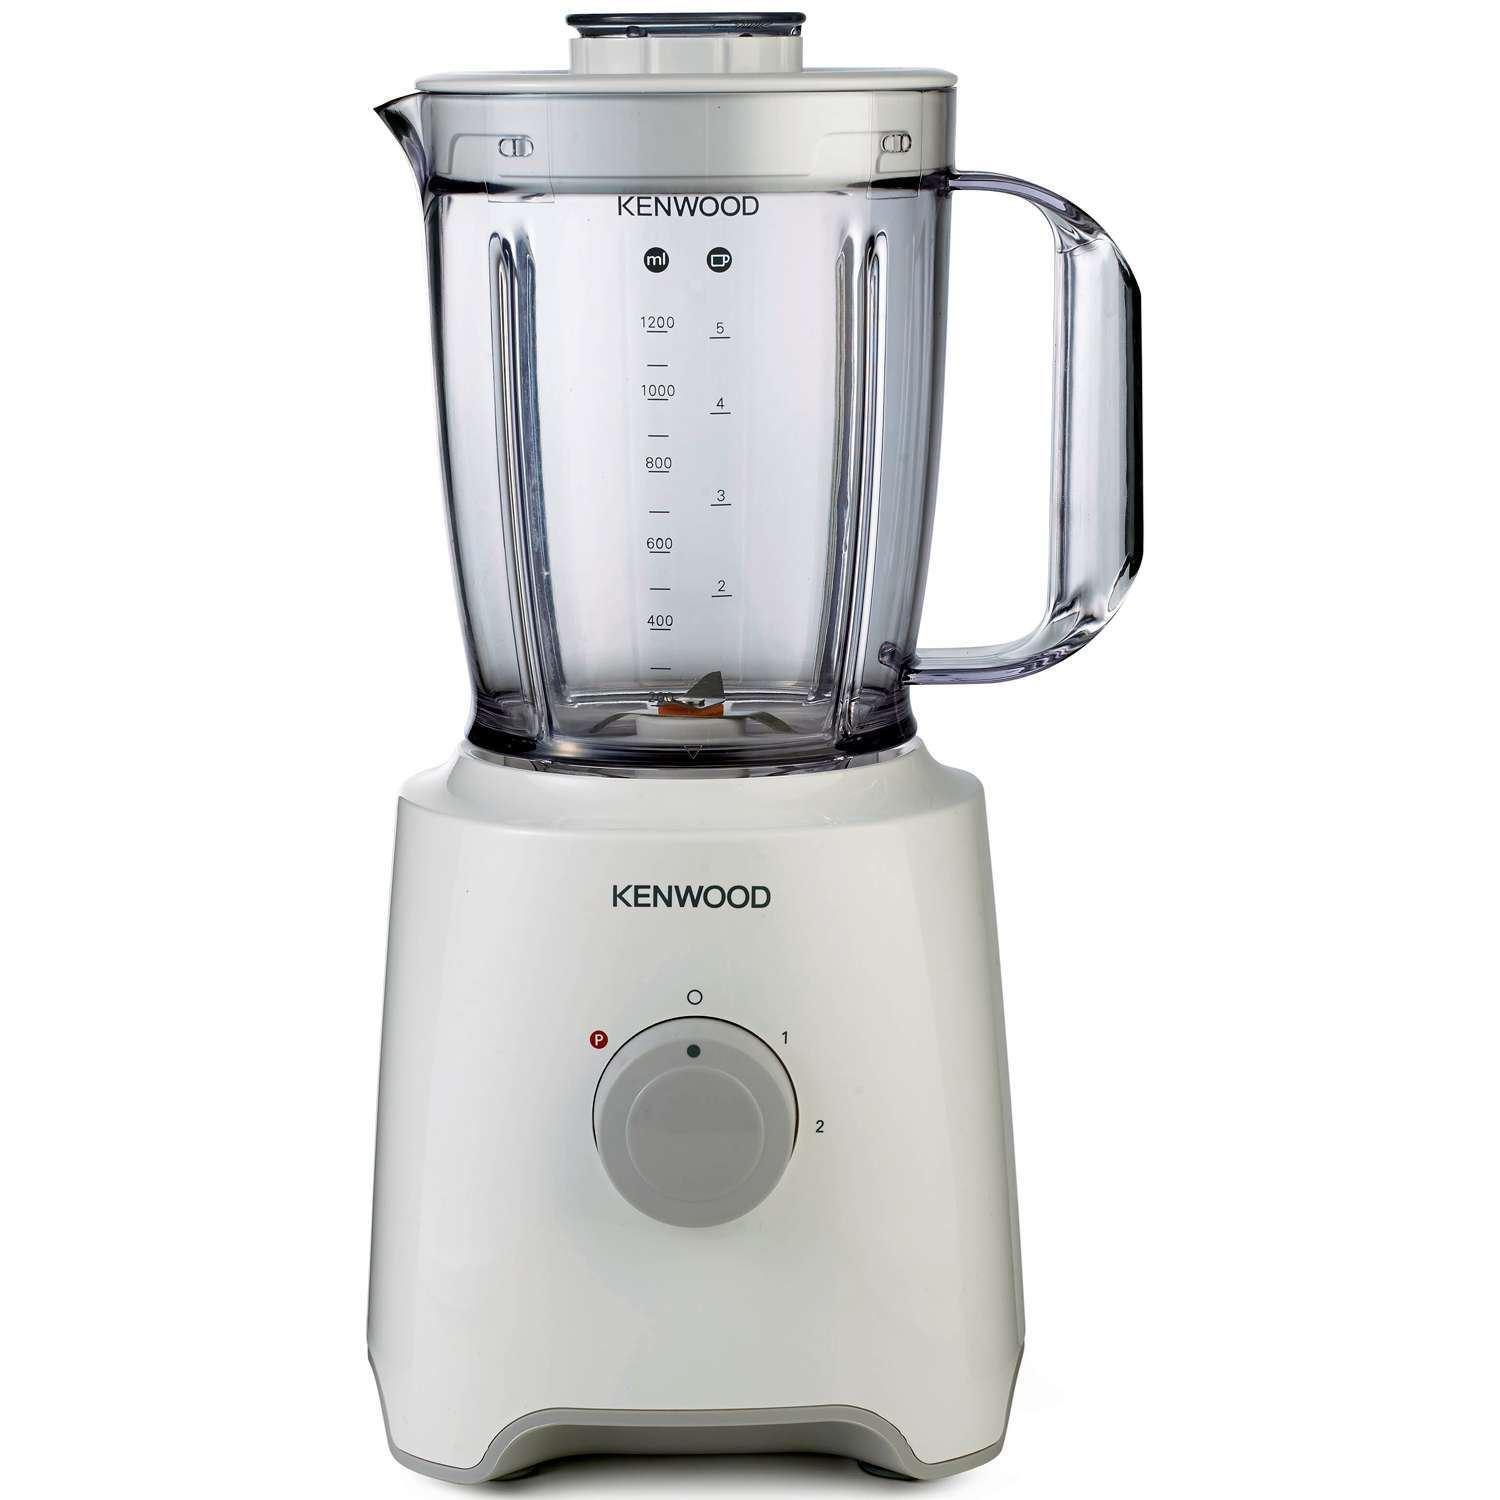 Kenwood - BLP302WH - Blender 2 vitesses Smoothie Maker - Blanc